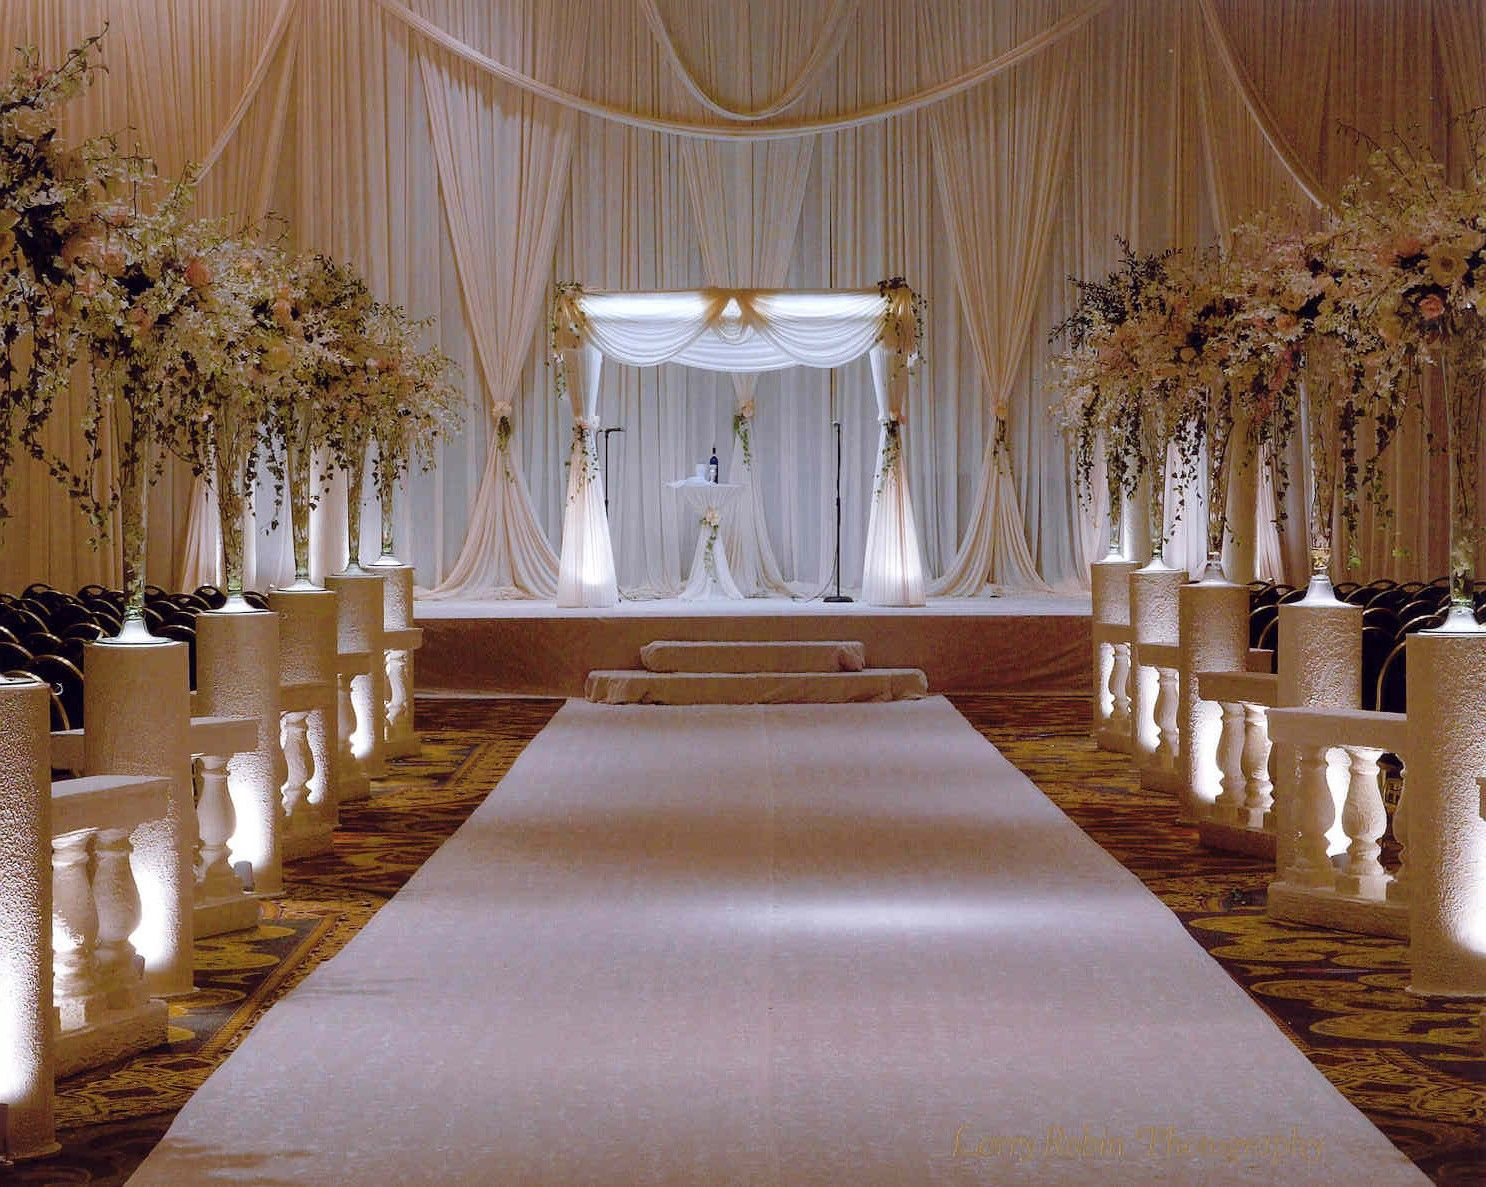 All White Indoor Wedding Ceremony Site: Wedding Flowers And Decorations